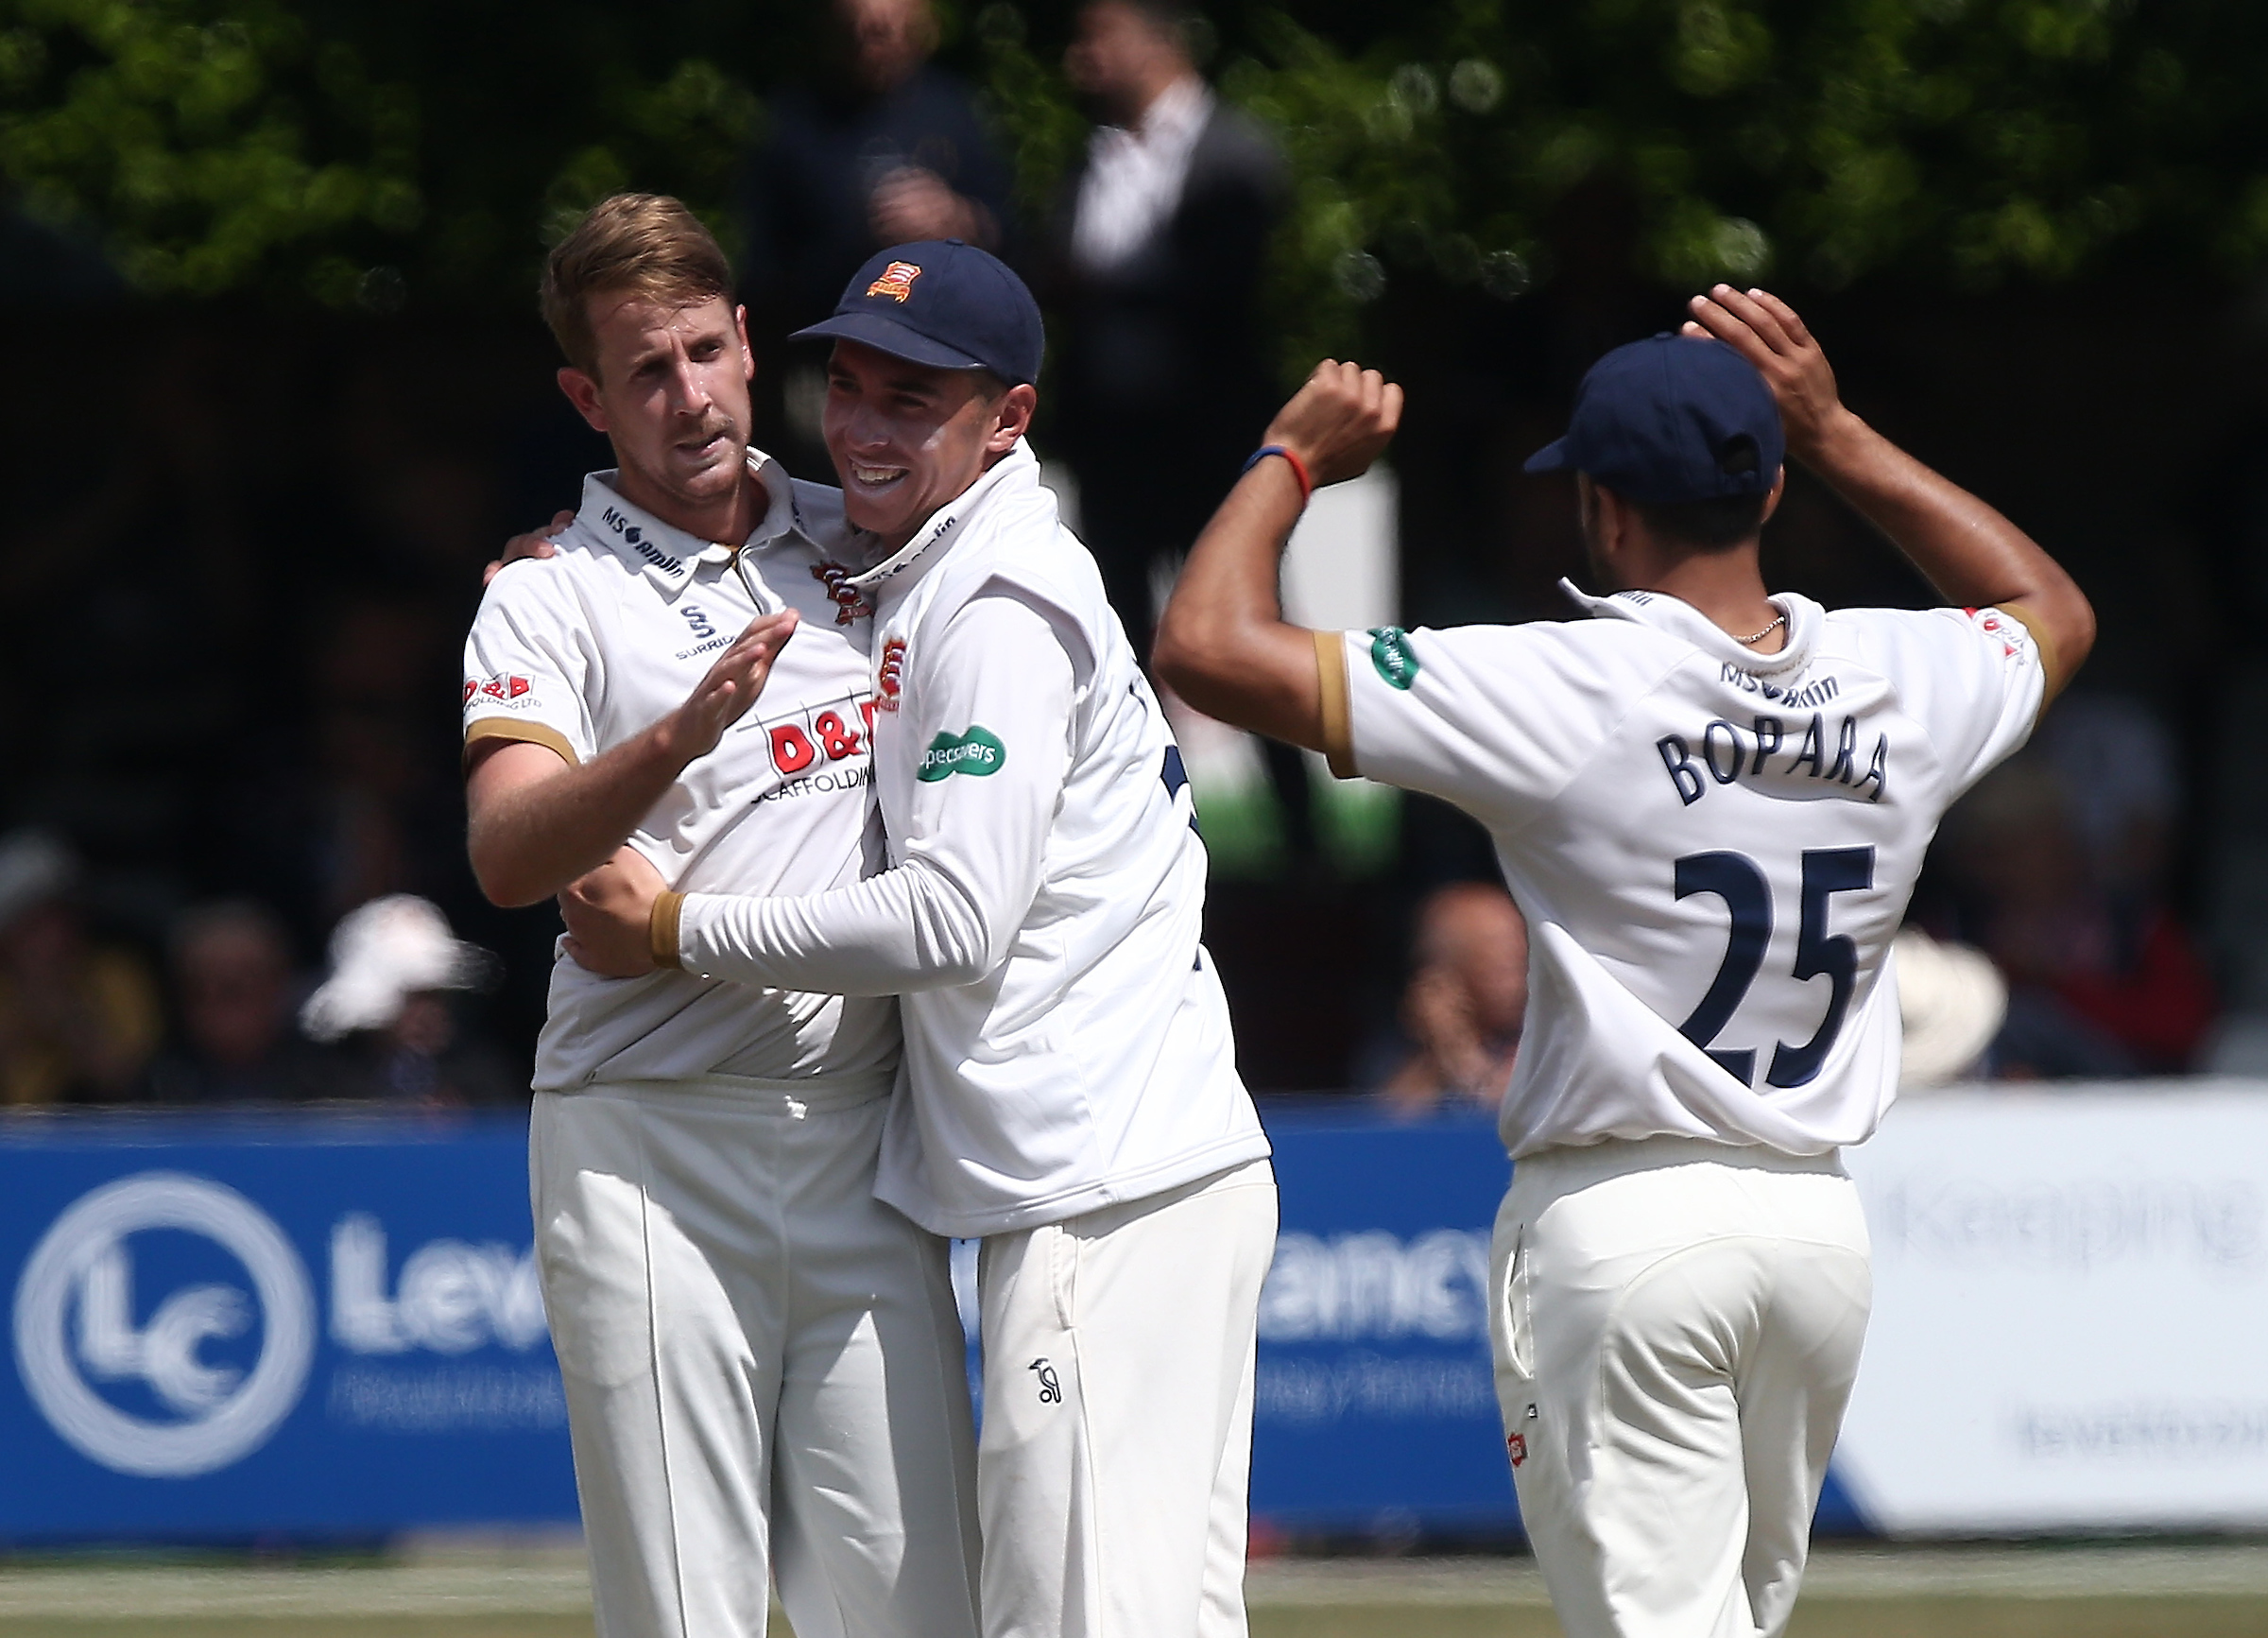 Matt Quinn of Essex celebrates with his team mates after taking the wicket of Nottinghamshire's Jake Libby Picture: Gavin Ellis/TGS Photos.